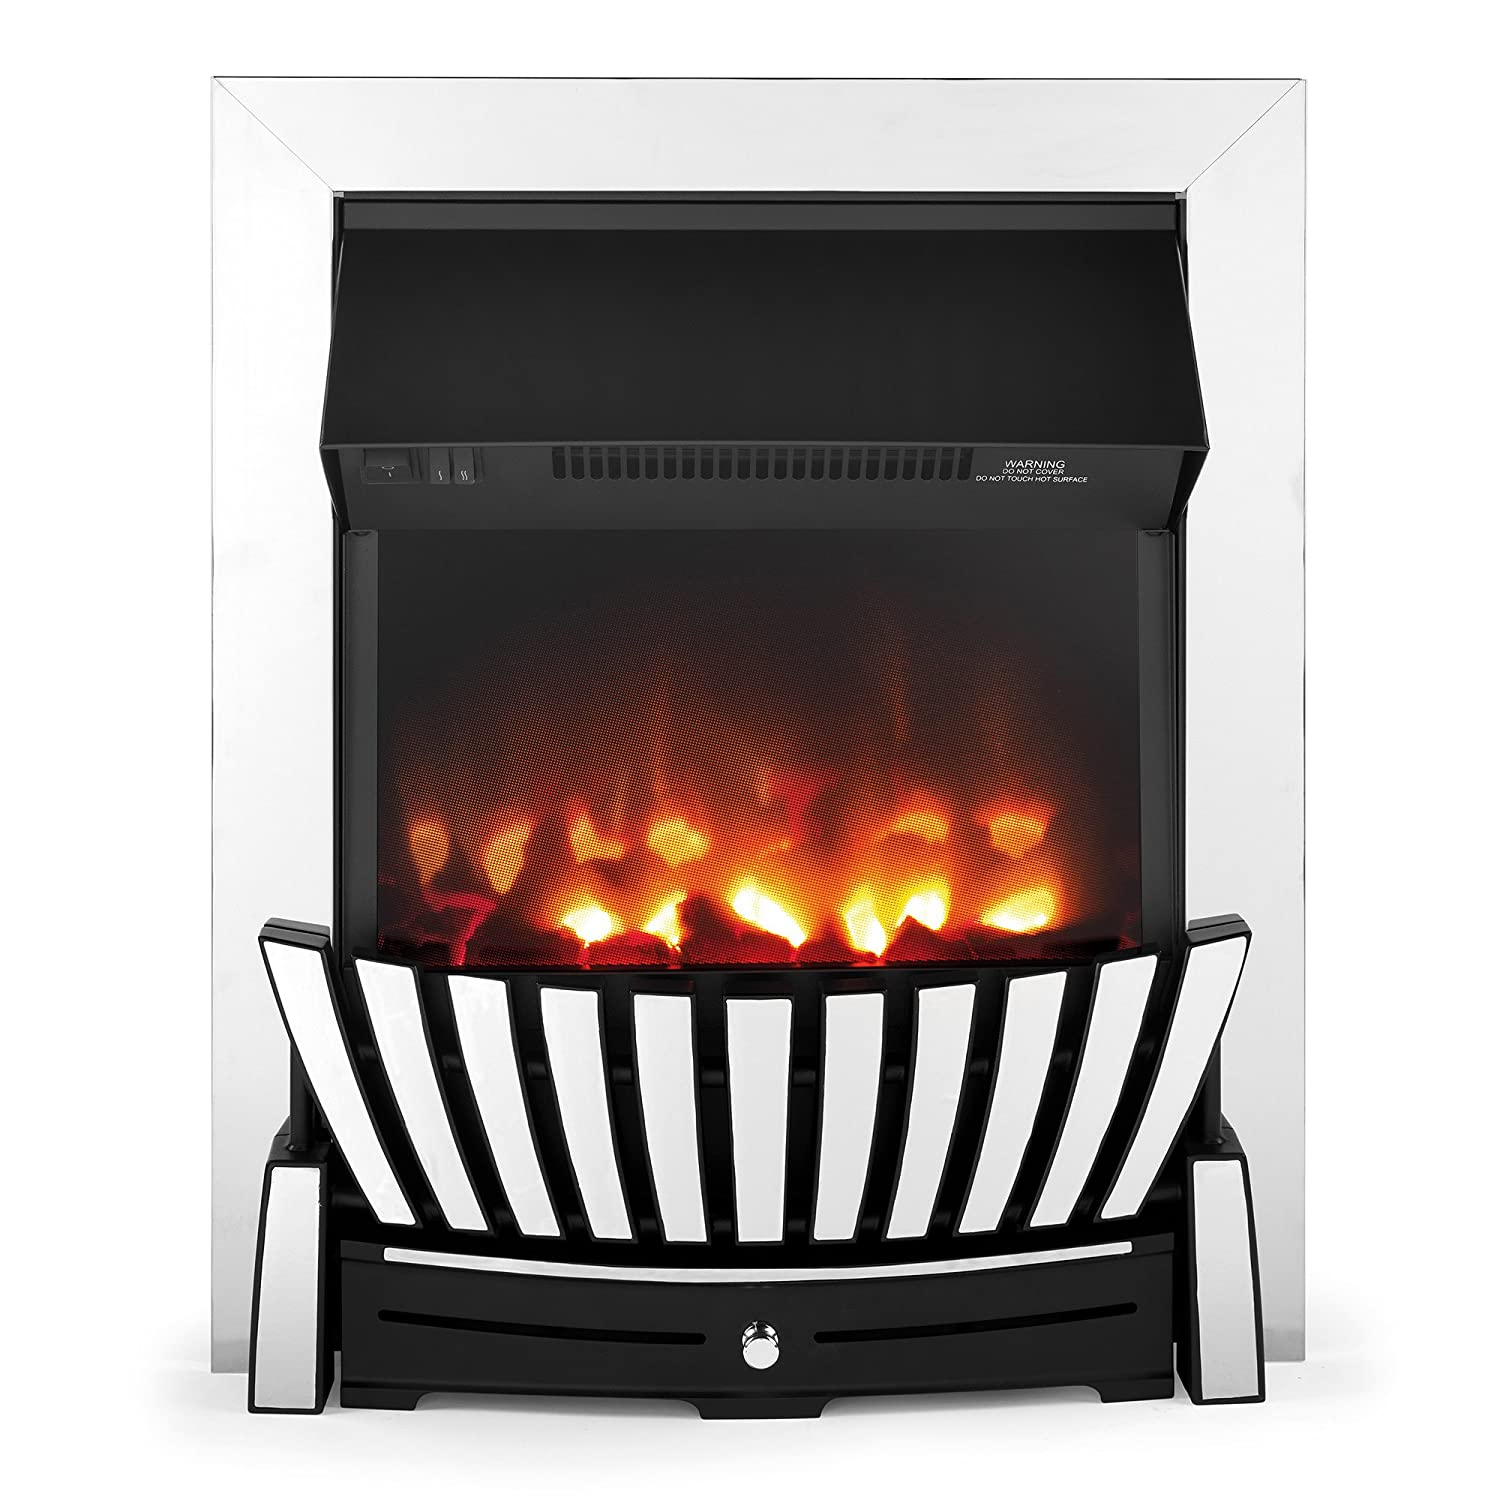 Beldray EH2350 Almada Inset and Free Standing Electric Fire, 2000 W, Black EH2350STK